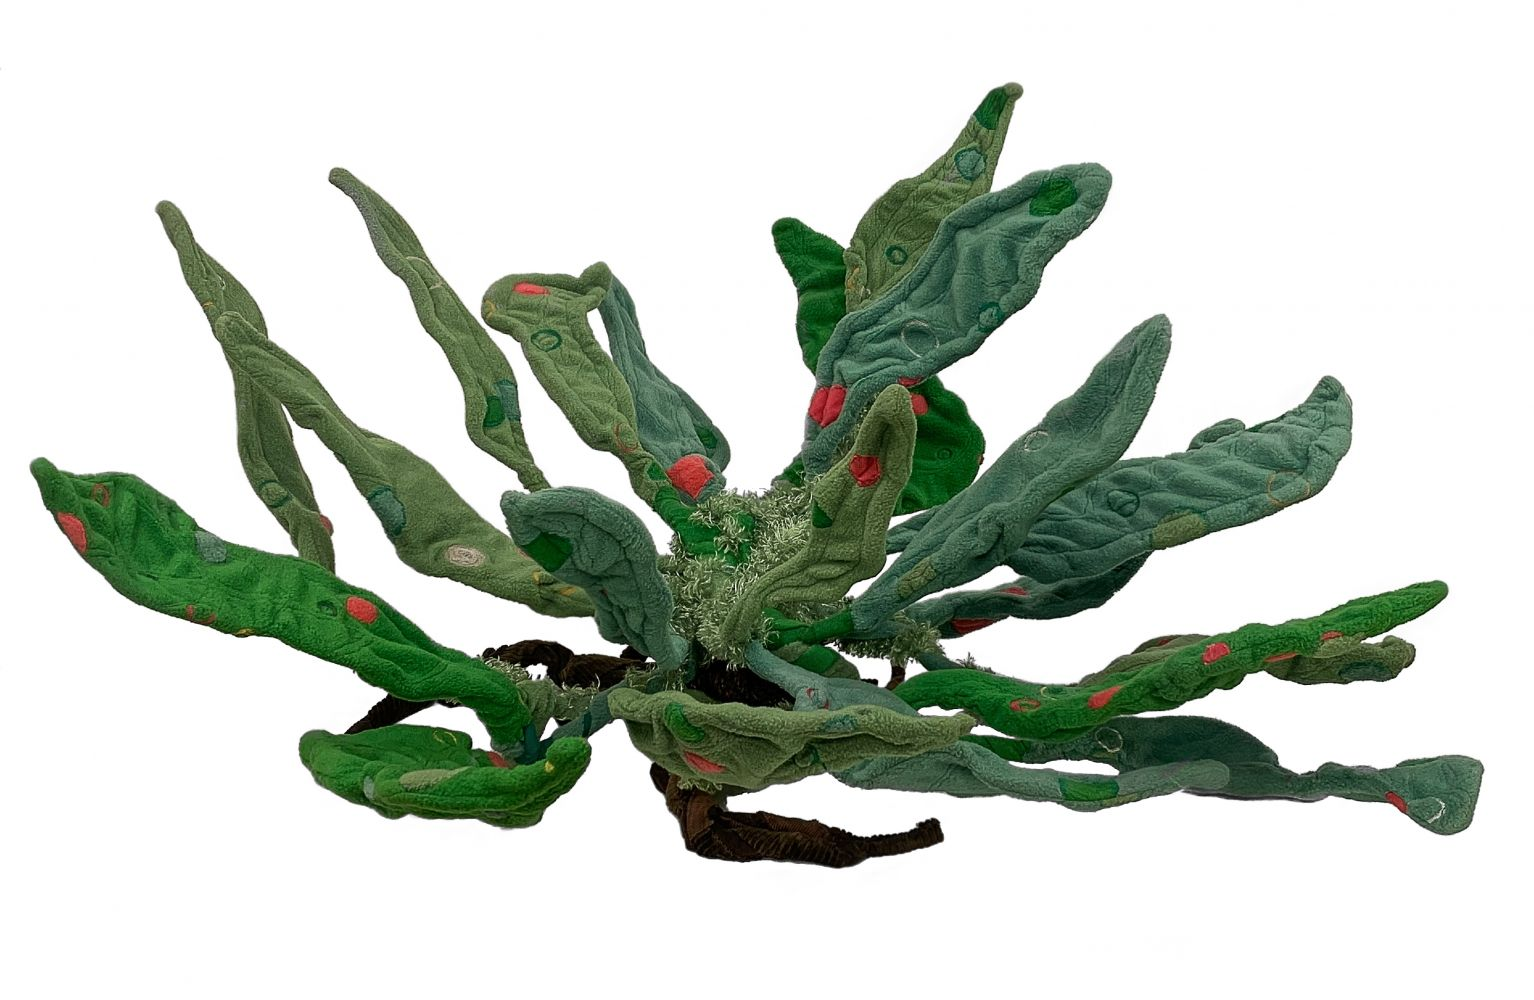 Melanie Fischer, Aquatic Plant   32″ x 47″ x 44″  Embroidered And Applique Sewn Fabric Over Wire And Wood